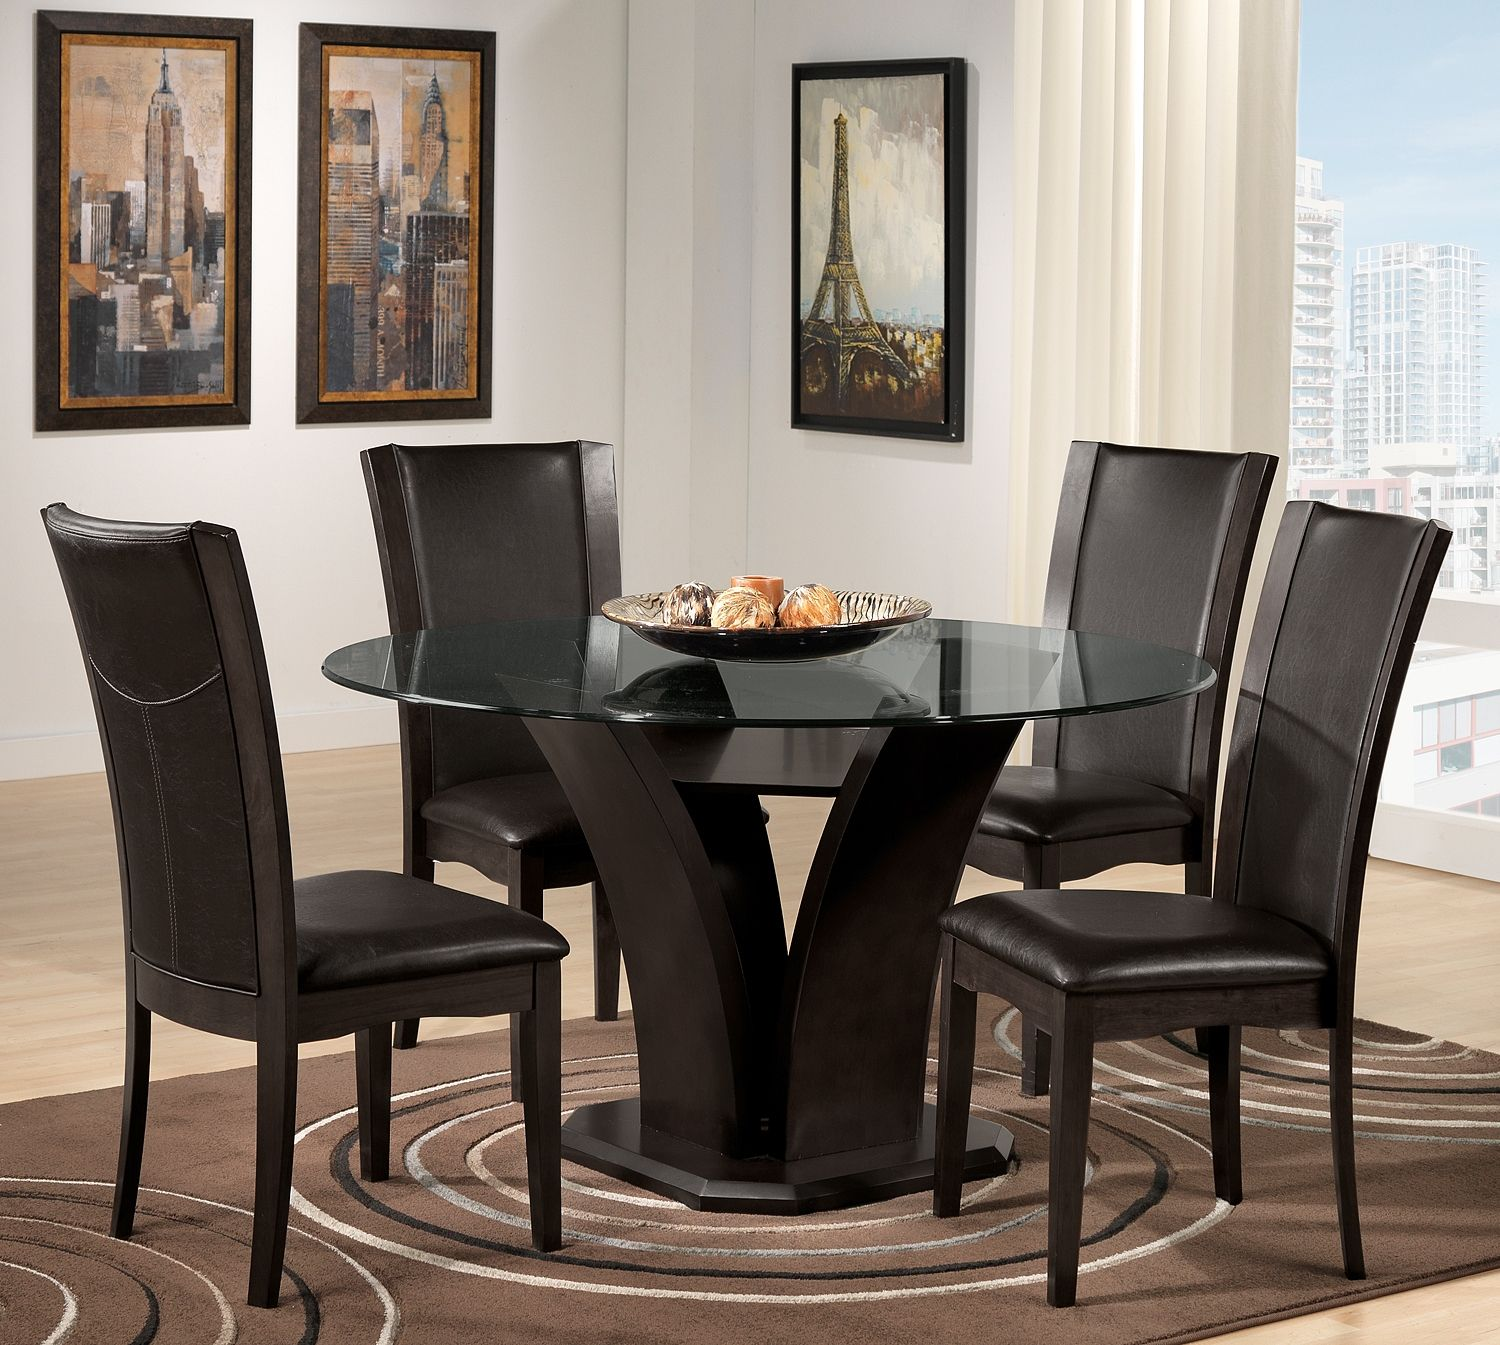 francesca ii casual dining 5 pc dinette leon u0027s 899 99 like this